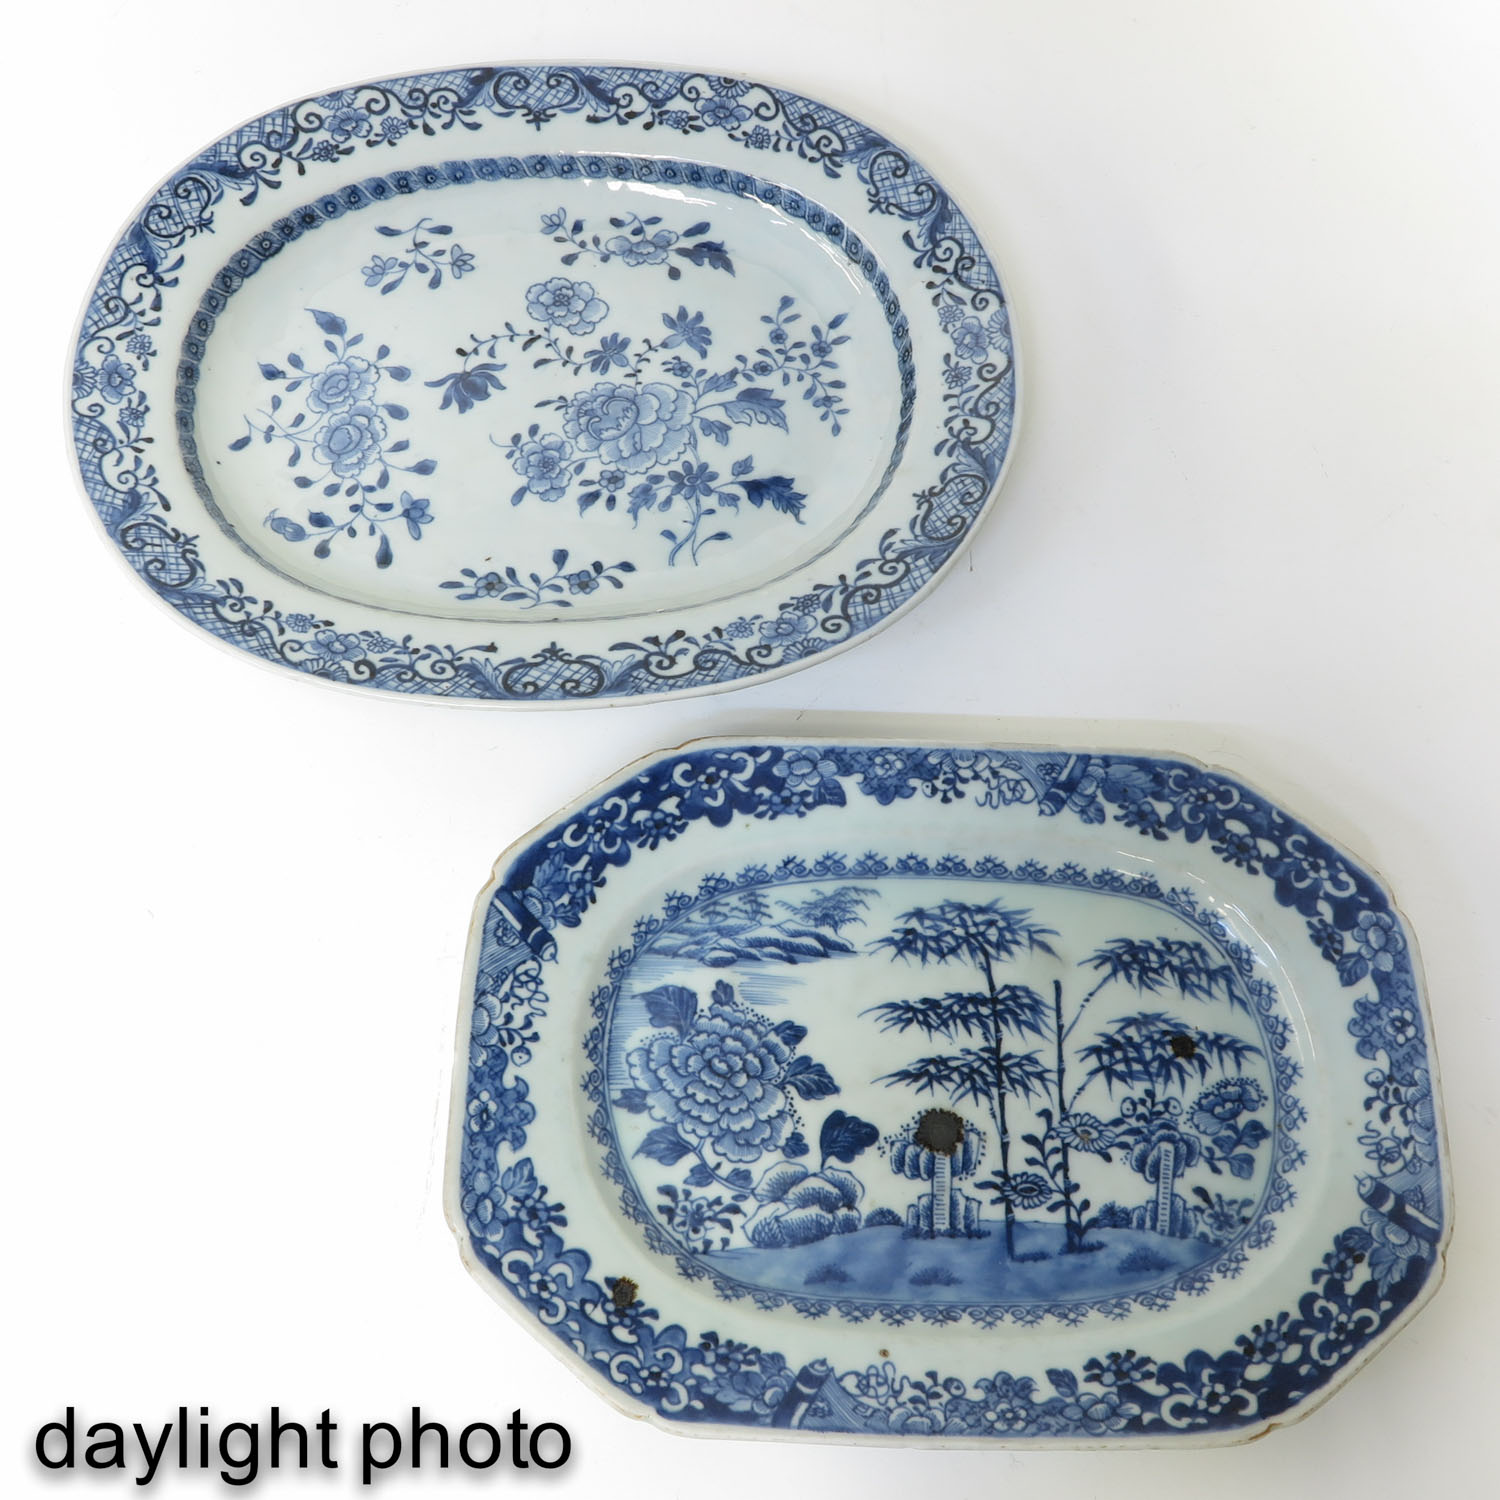 A Lot of 2 Blue and White Trays - Image 7 of 10